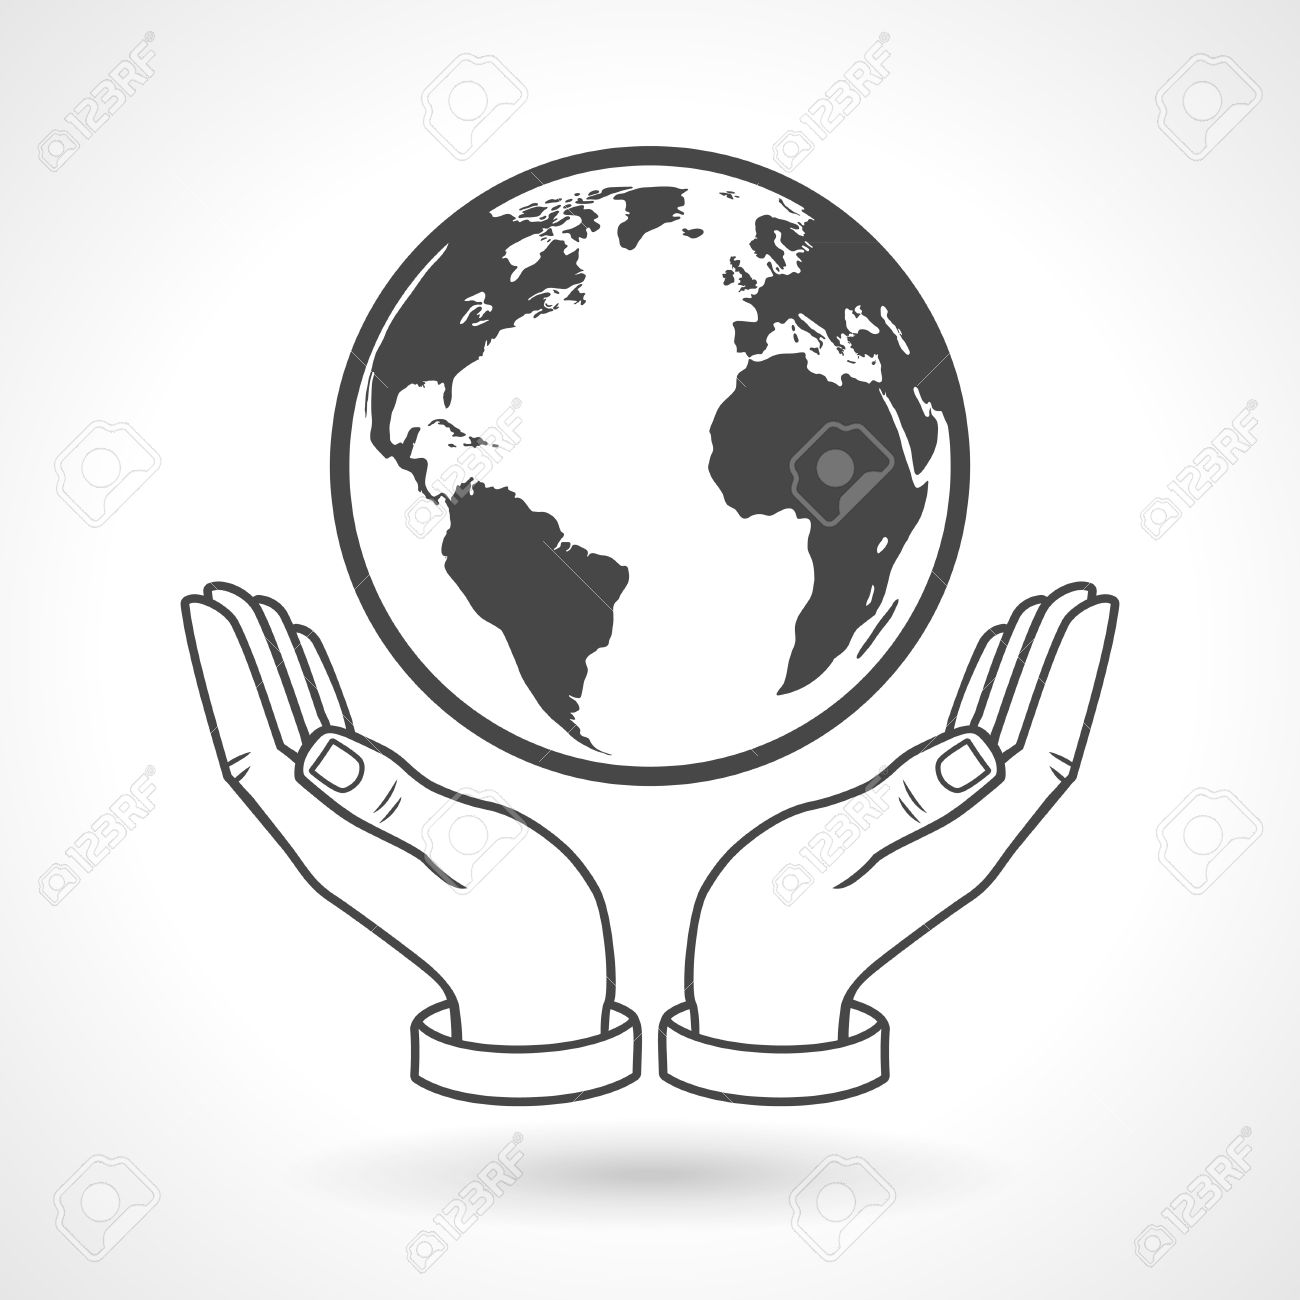 1300x1300 Hands Holding The World Clipart Amp Hands Holding The World Clip Art